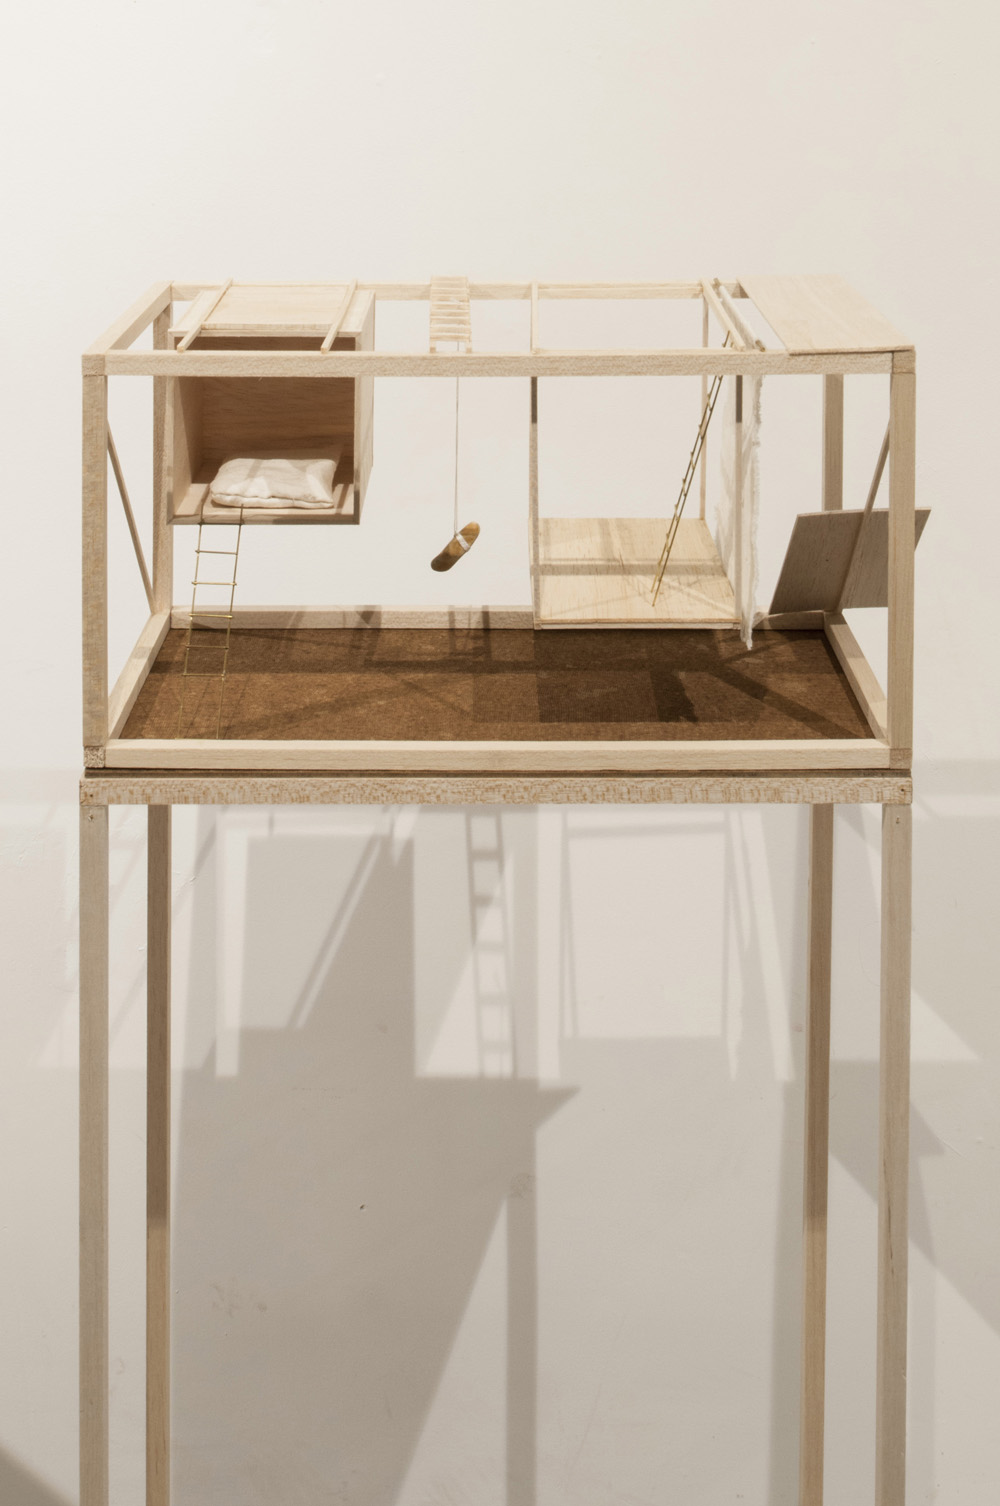 Maison 02, 2015, balsa, brass, print on balsa, stone, wire, cotton house 20 x 20 x 40 cm, pedestal 20 x 40 x 120 cm